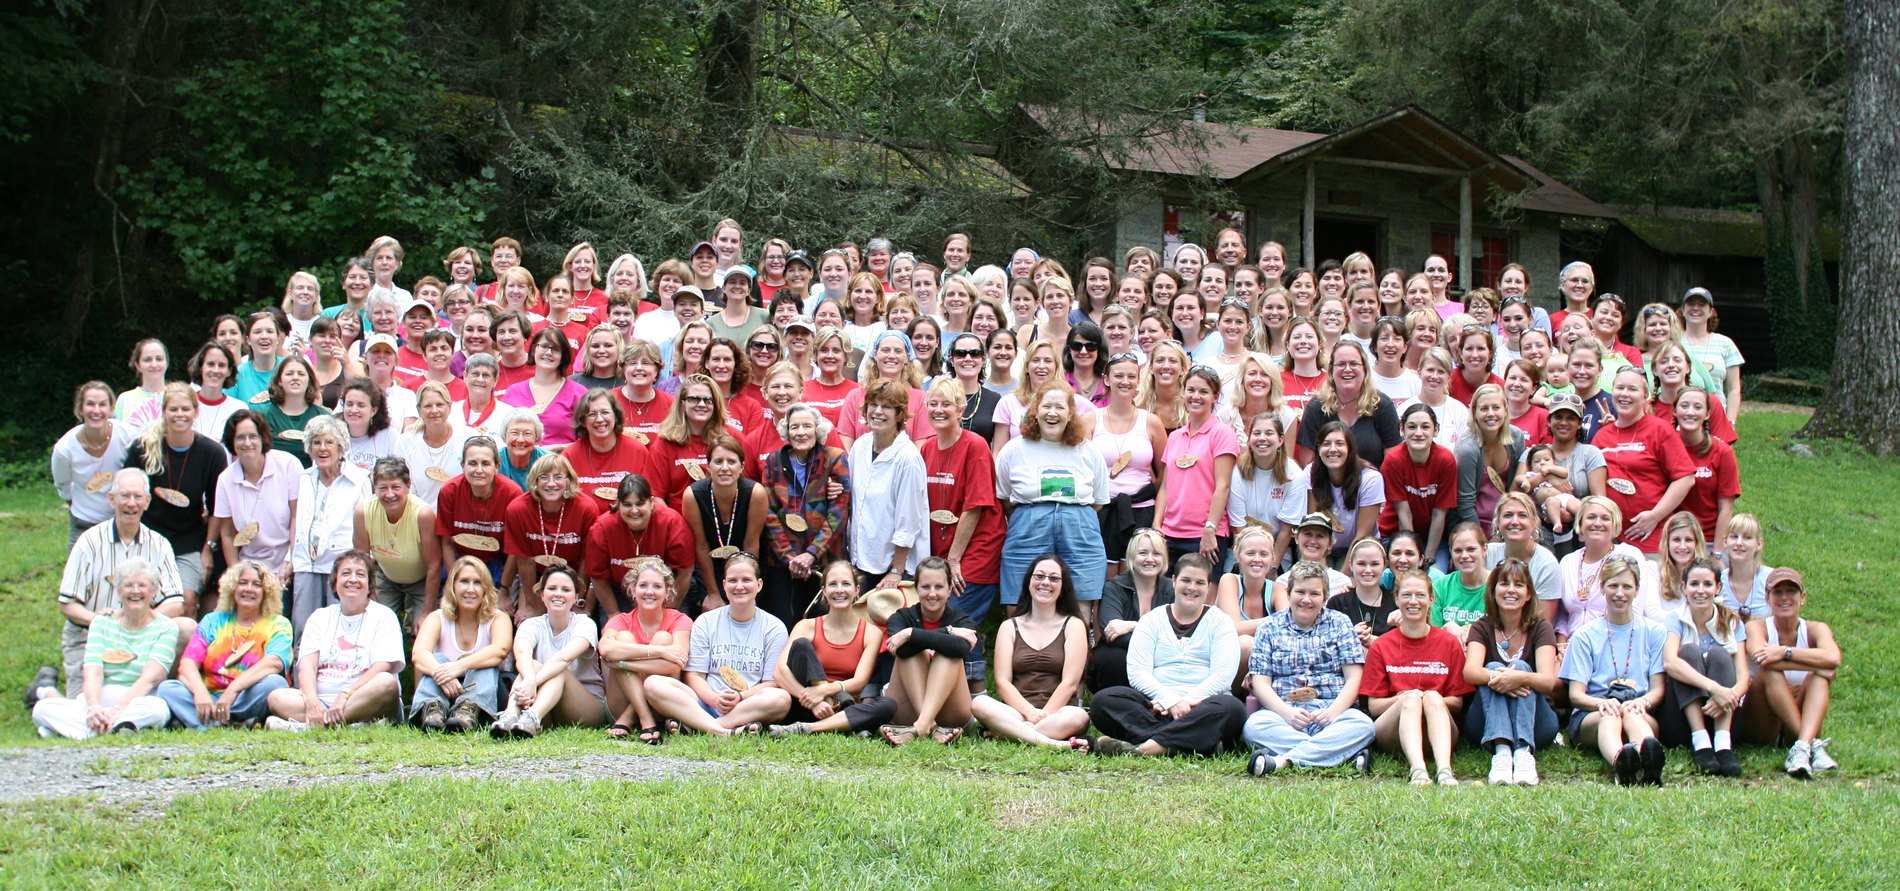 girls summer camp reunion group